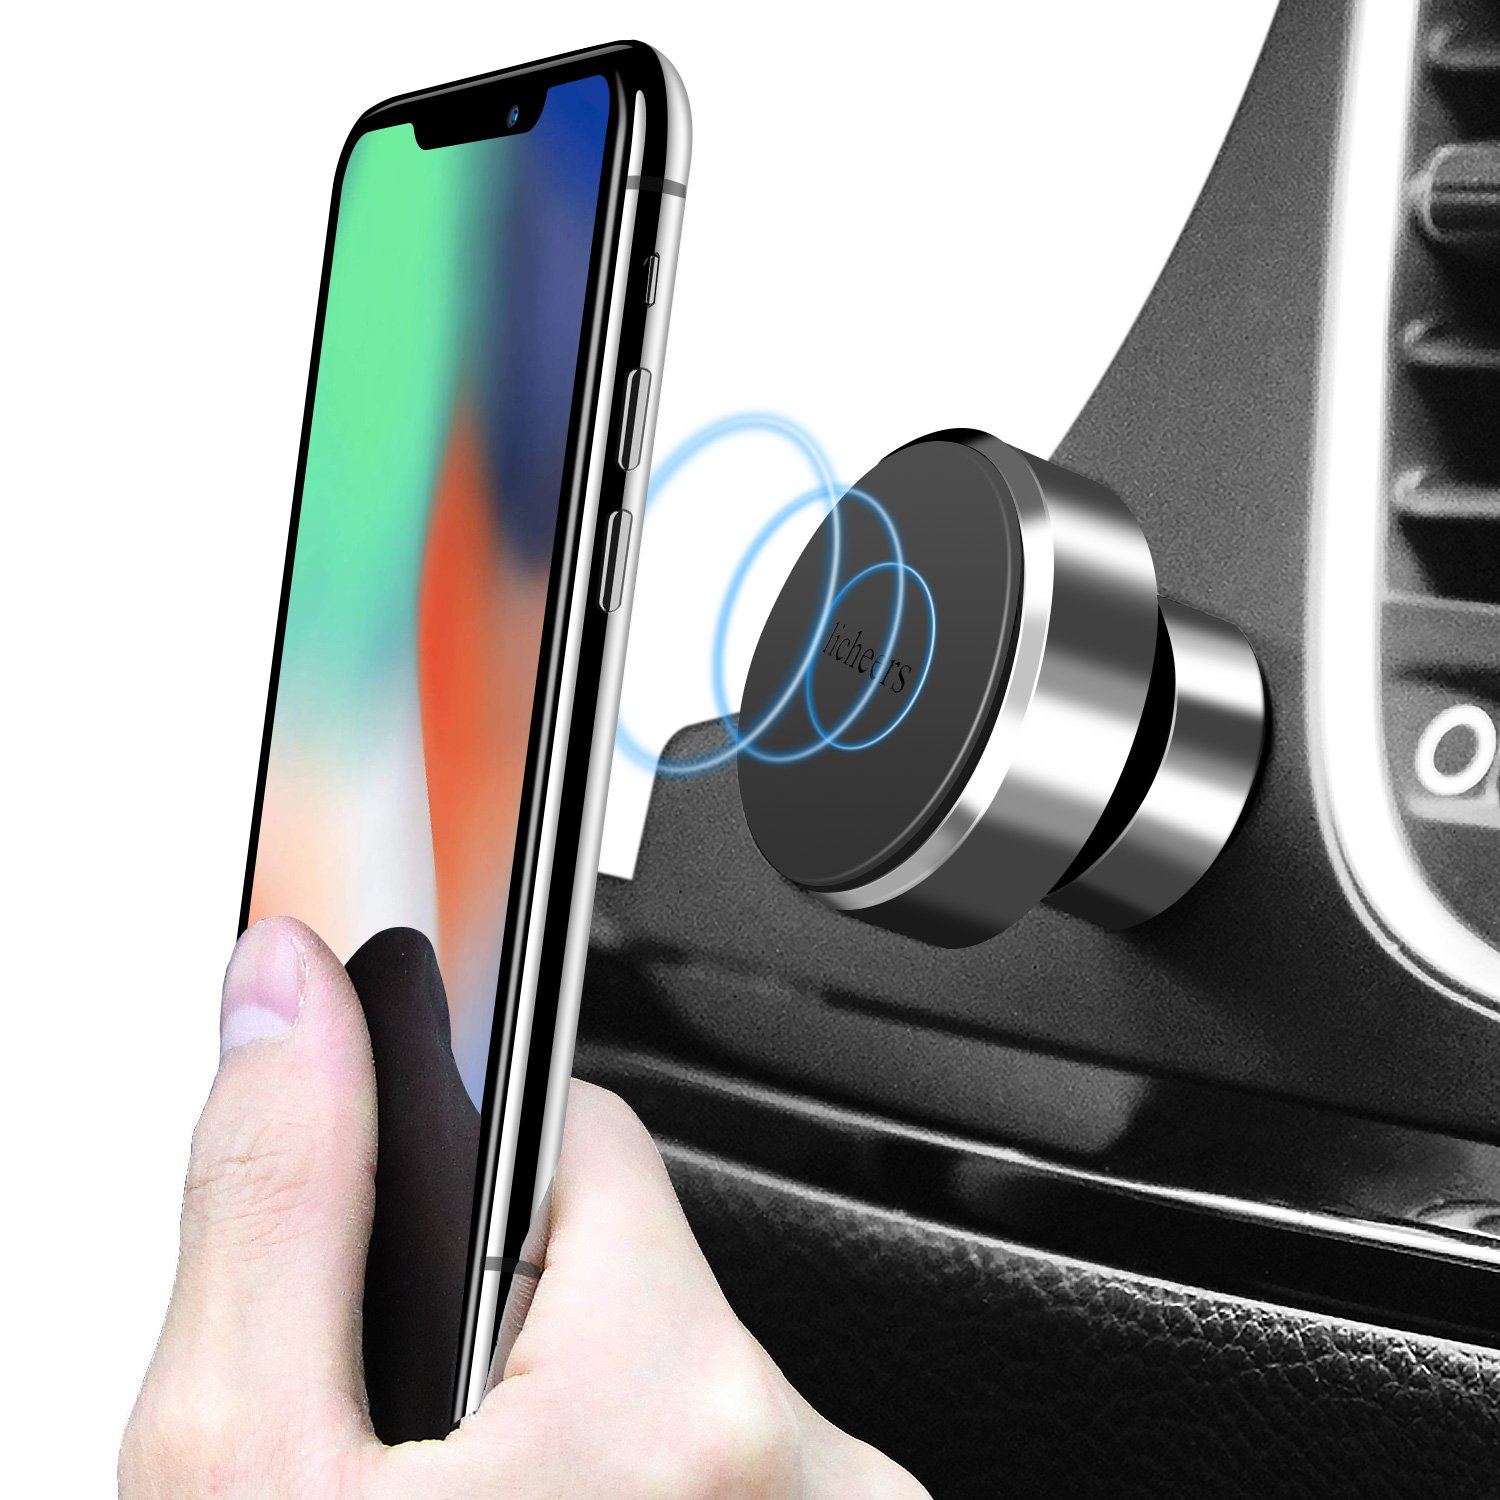 Licheers Magnetic Car Mount Holder, Car Phone Holder 360 Rotation Universal Dashboard Mount Stand for iPhone X, Samsung, Android Smartphones, GPS (Silver)